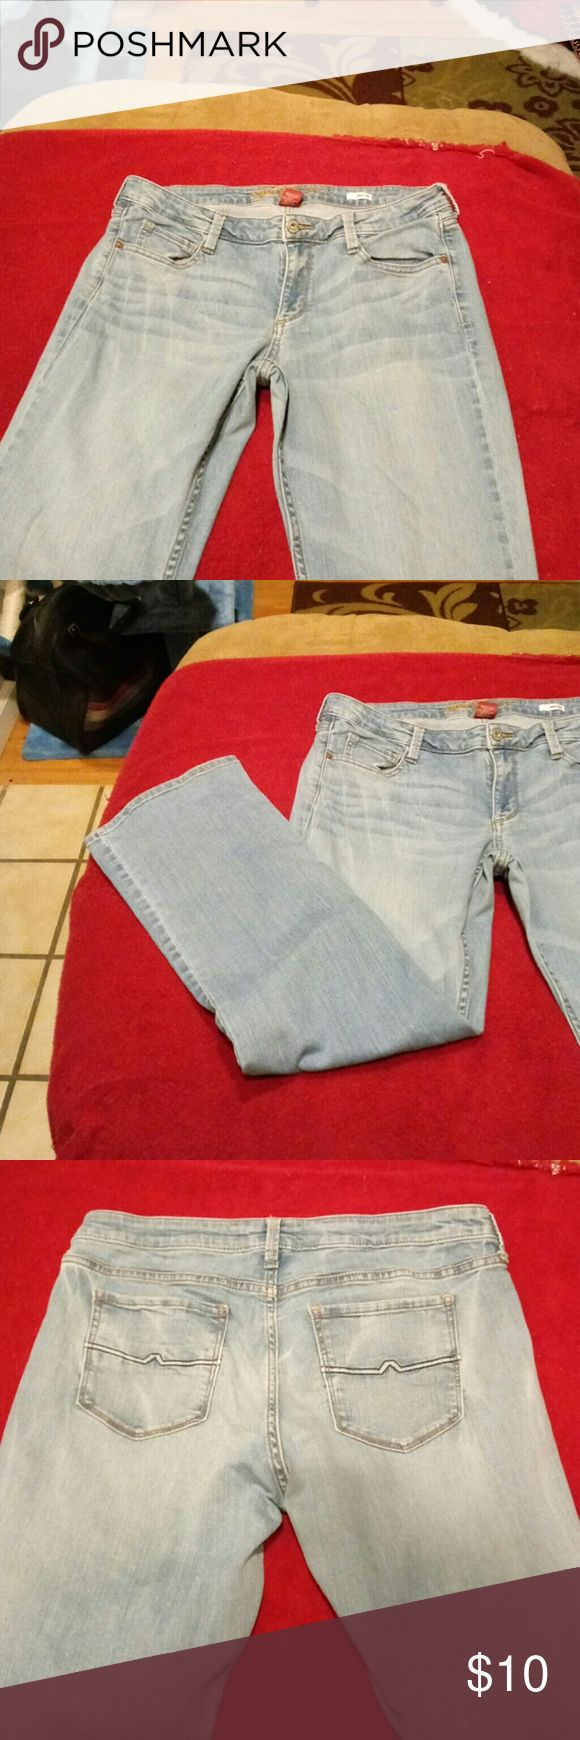 15 short faded jeans Good condition boot cut jeans Arizona Jeans Jeans Boot Cut